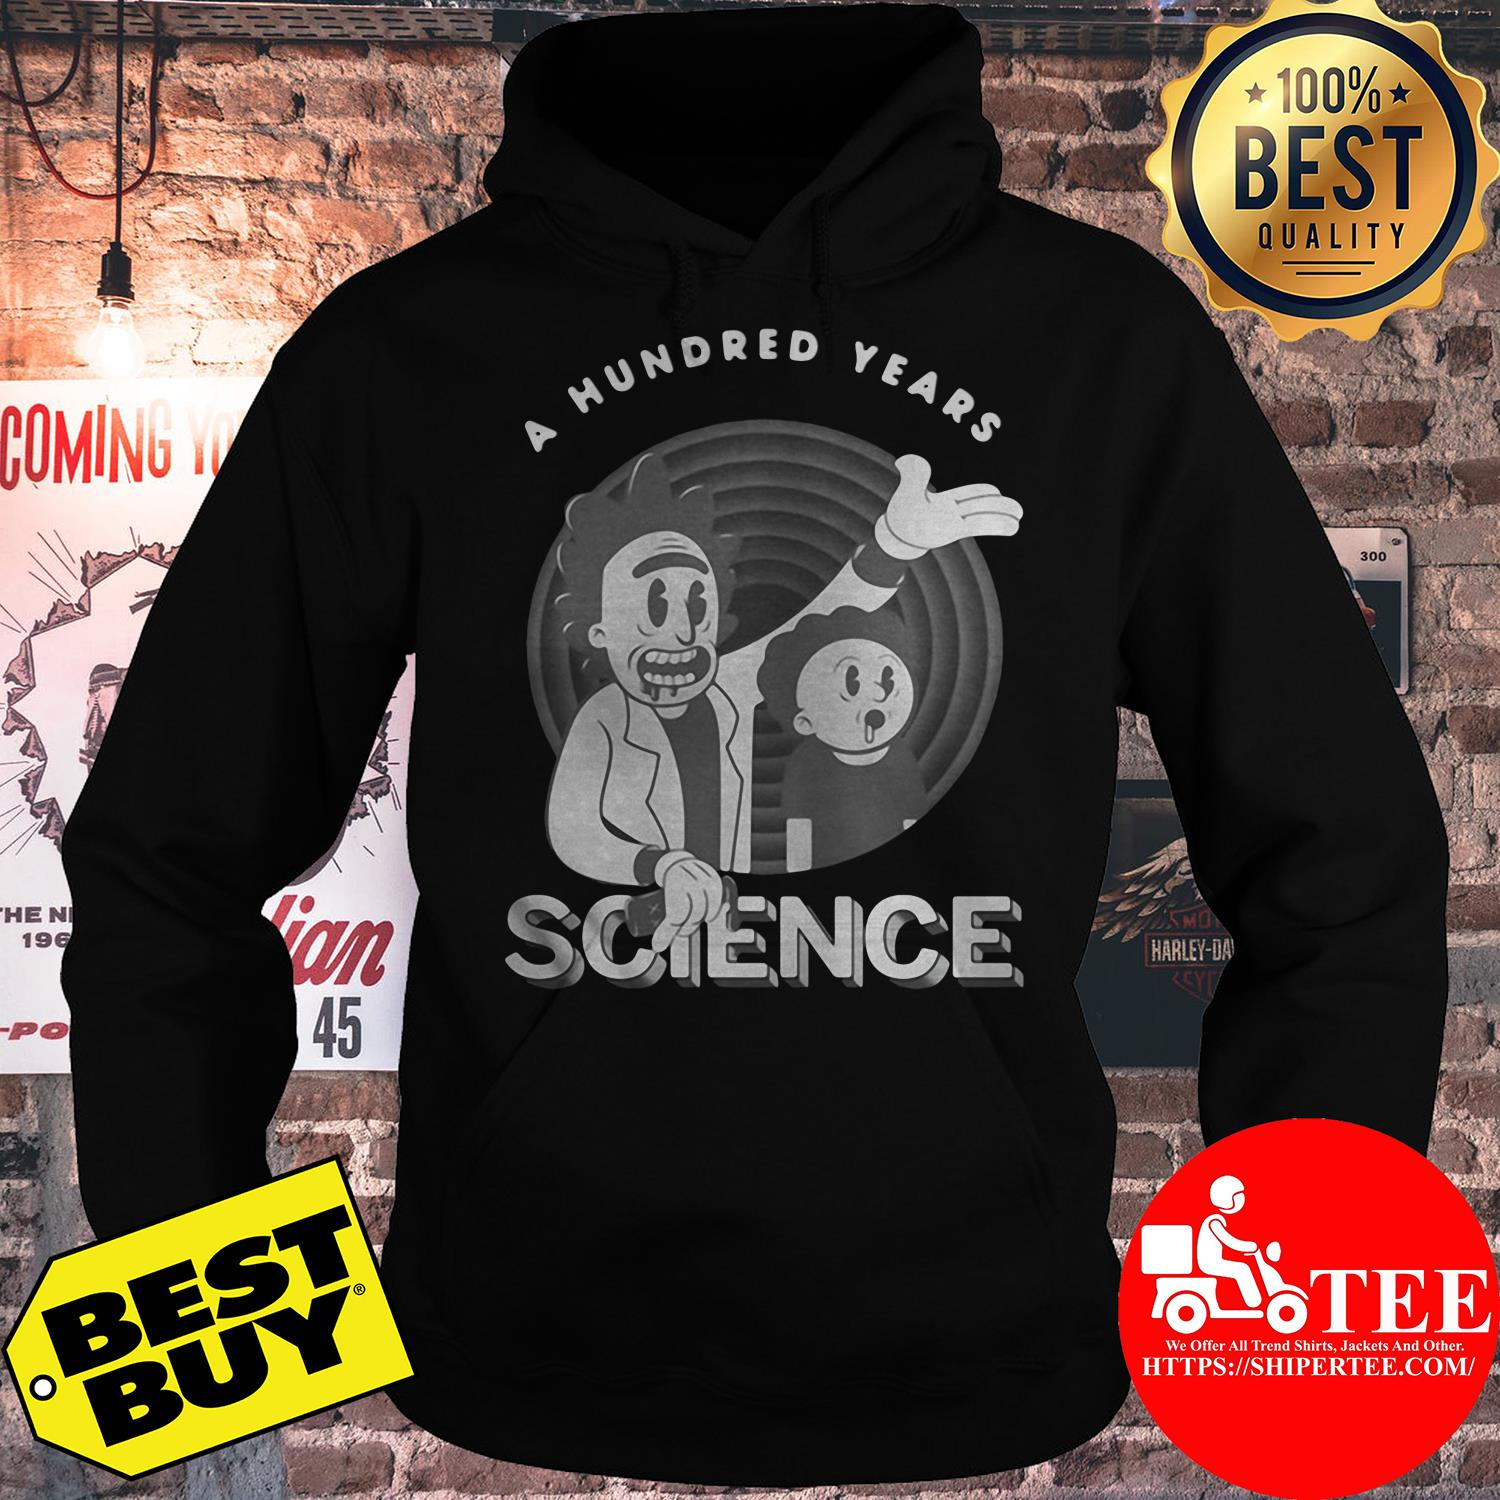 Rick and Morty a hundred years science hoodie